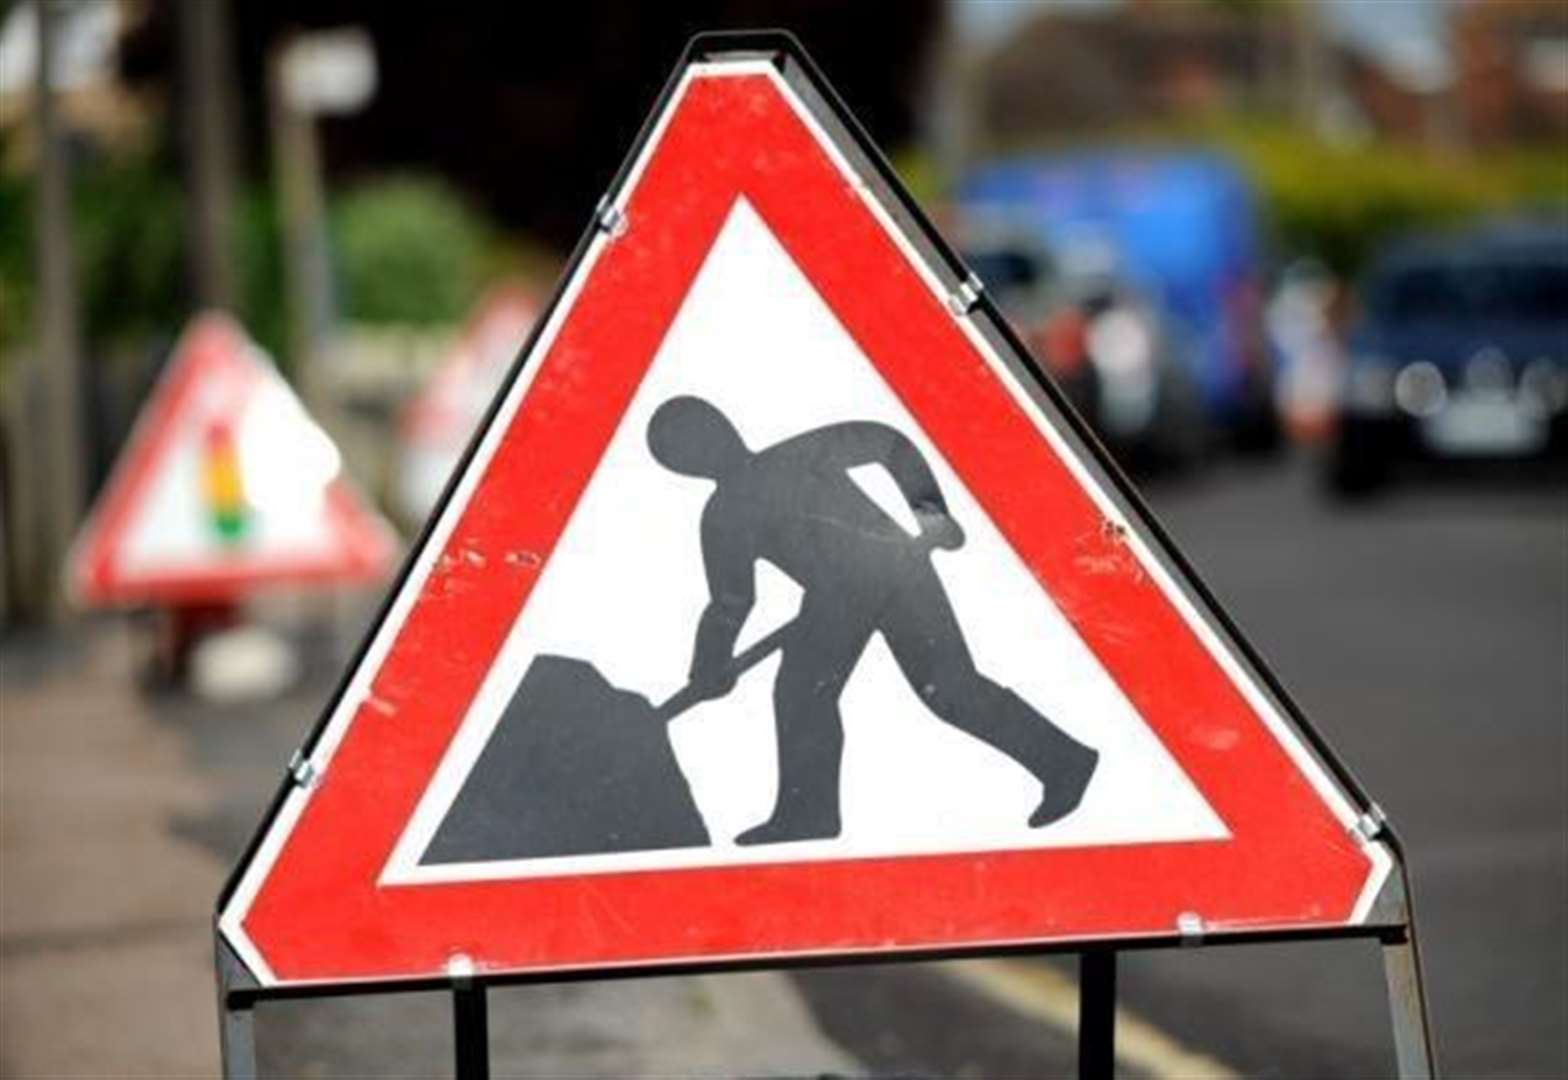 Two week road closure planned for Upwell repairs